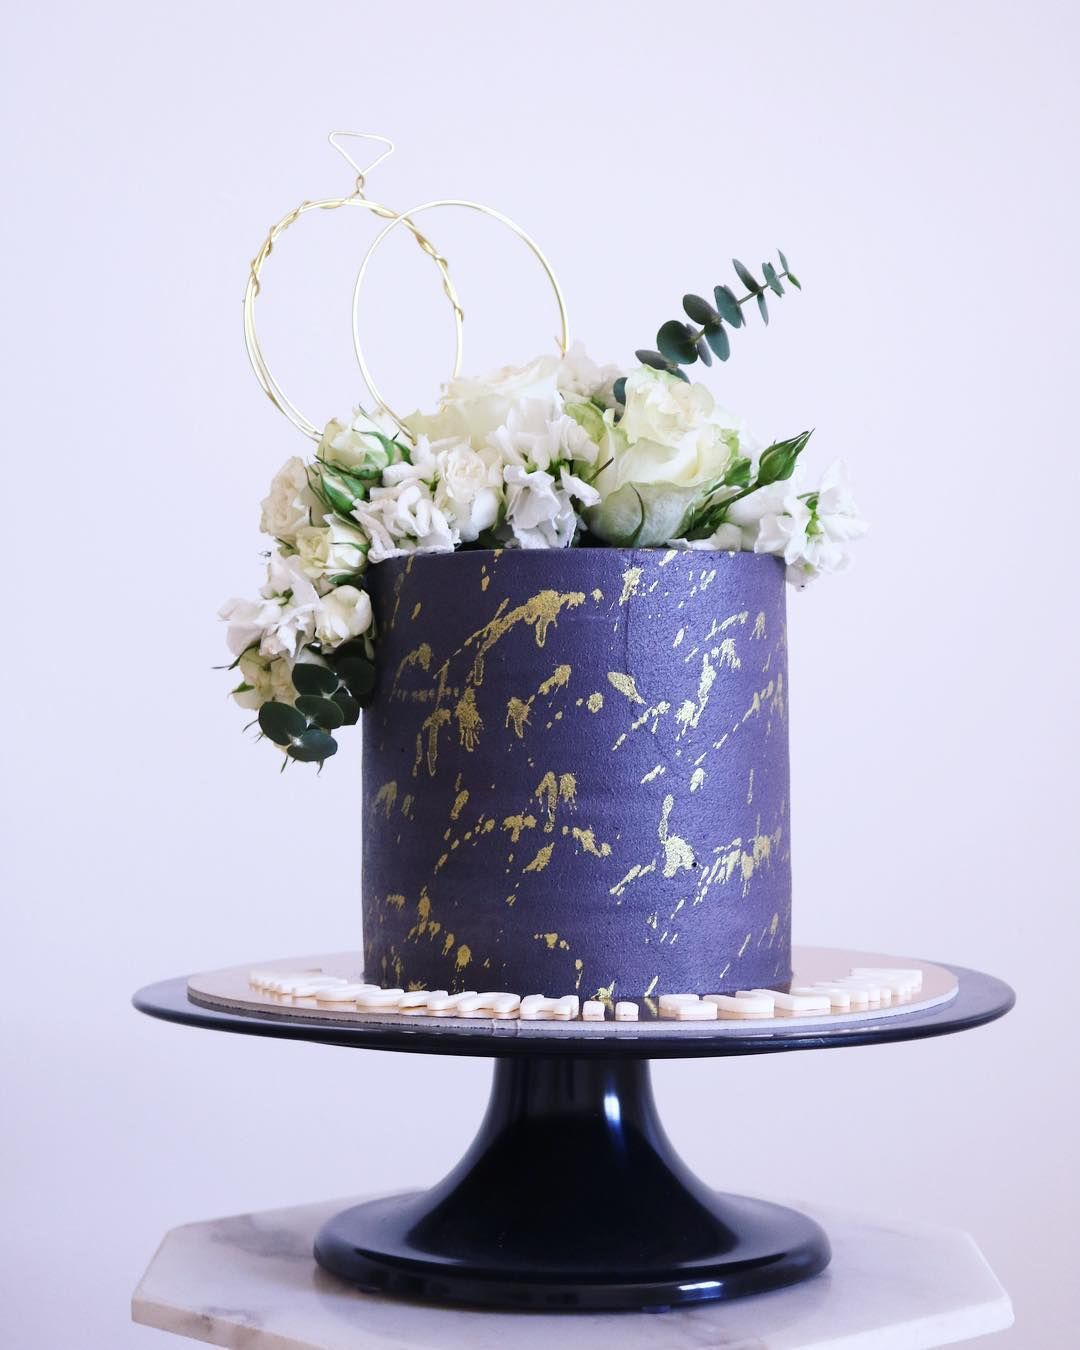 Pin By Classy 1 On كيكه Wedding Cakes Vintage Graduation Diy Happy Eid